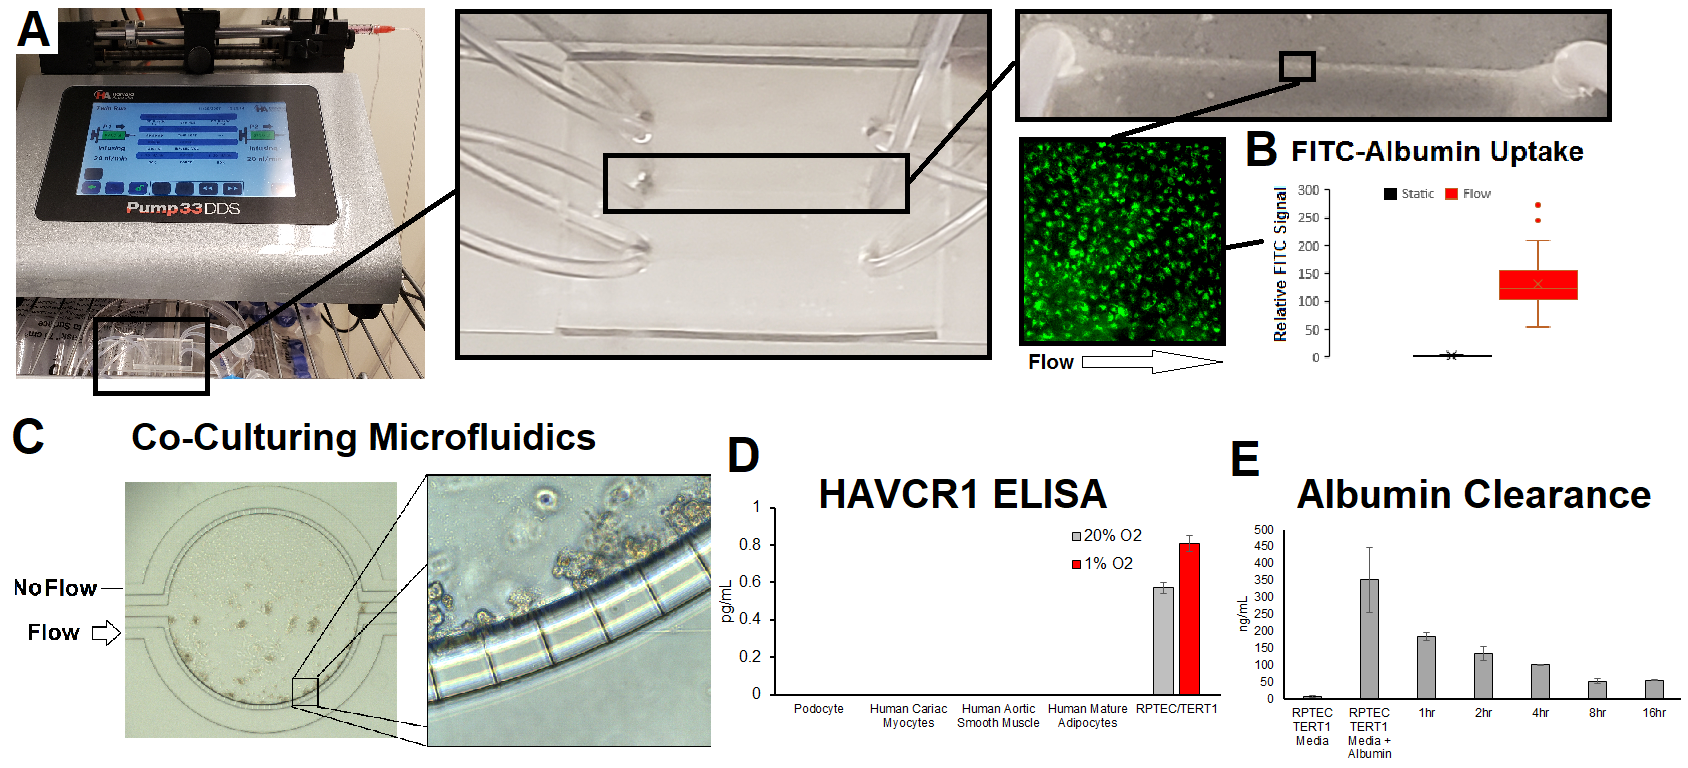 Renal Proximal Tubule Cell microfluidics. A-B) Setup for simple fluidics, allowing for passing over FITC-albumin to observe uptake (B). C) More complex coculture setup for microfluidics. D) HAVCR1 damage response as a result of hypocia. E) Albumin uptake and degradation using ELISA.